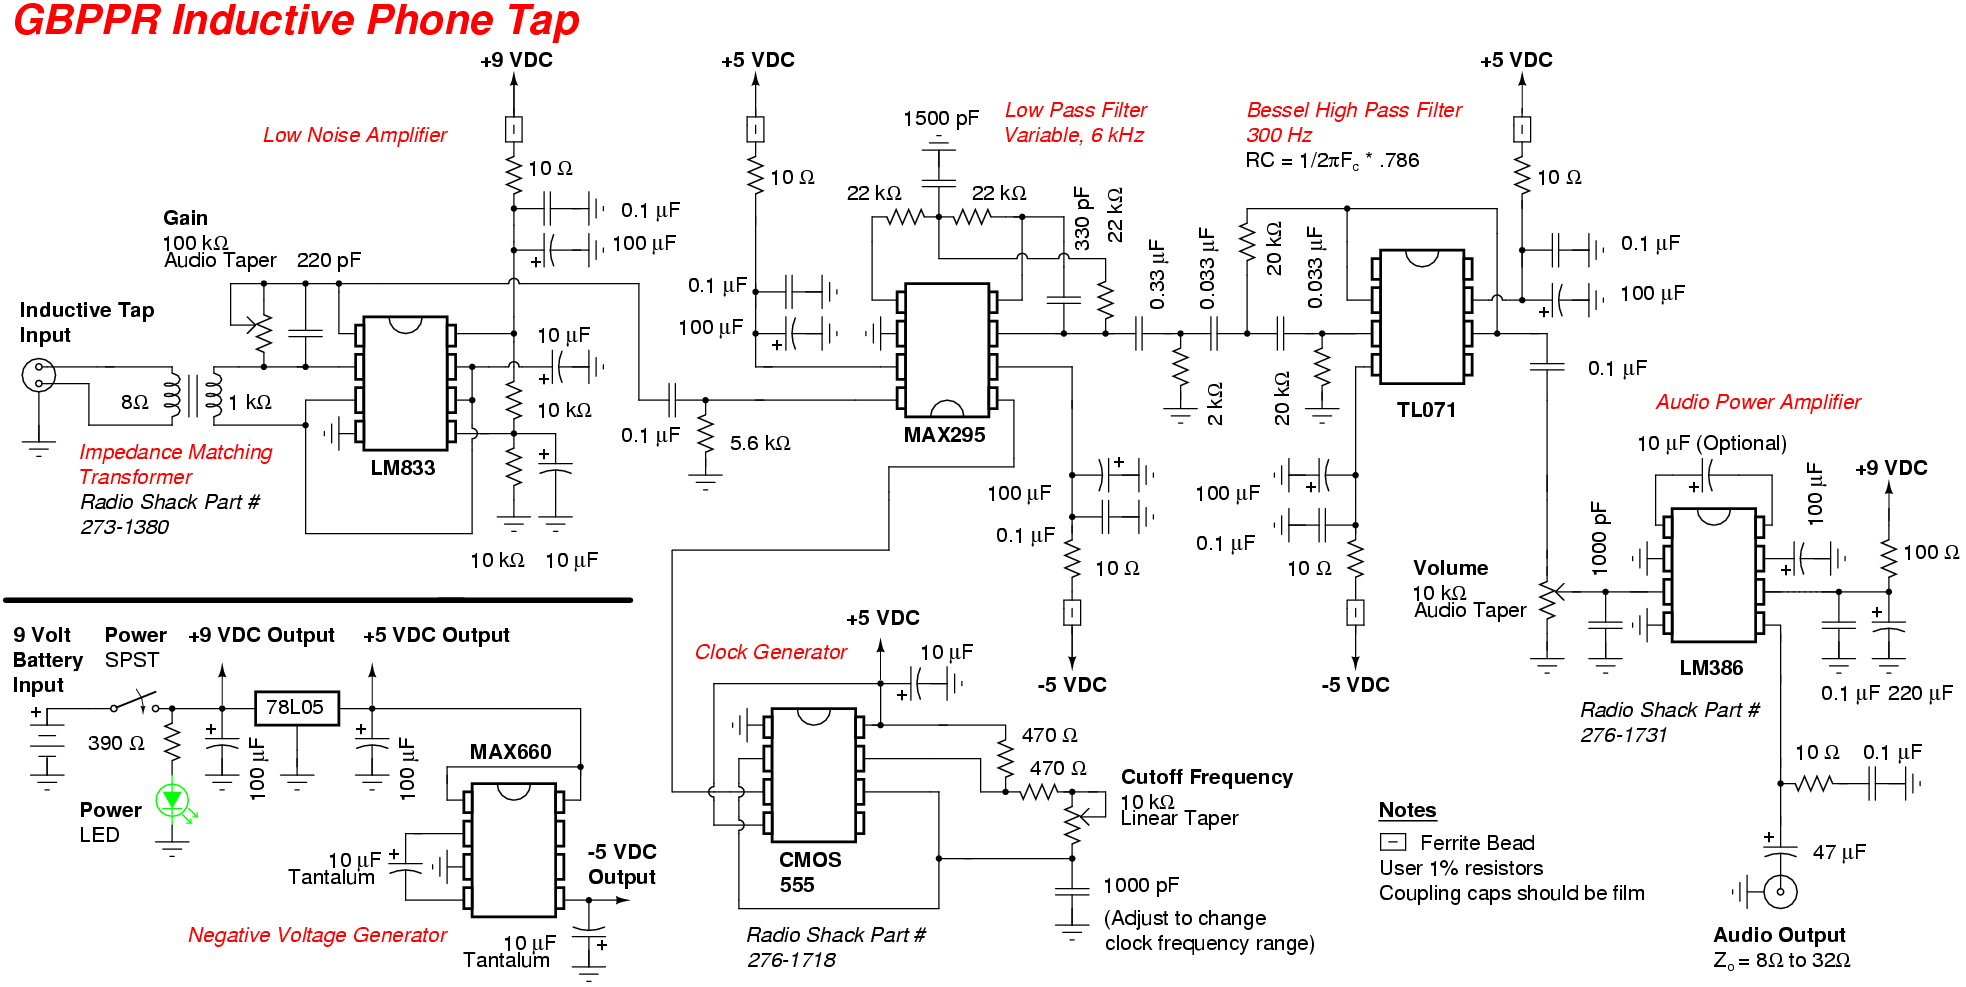 Gbppr Telephone Induction Tap Electronic Metal Detector Schematic Circuit Diagram